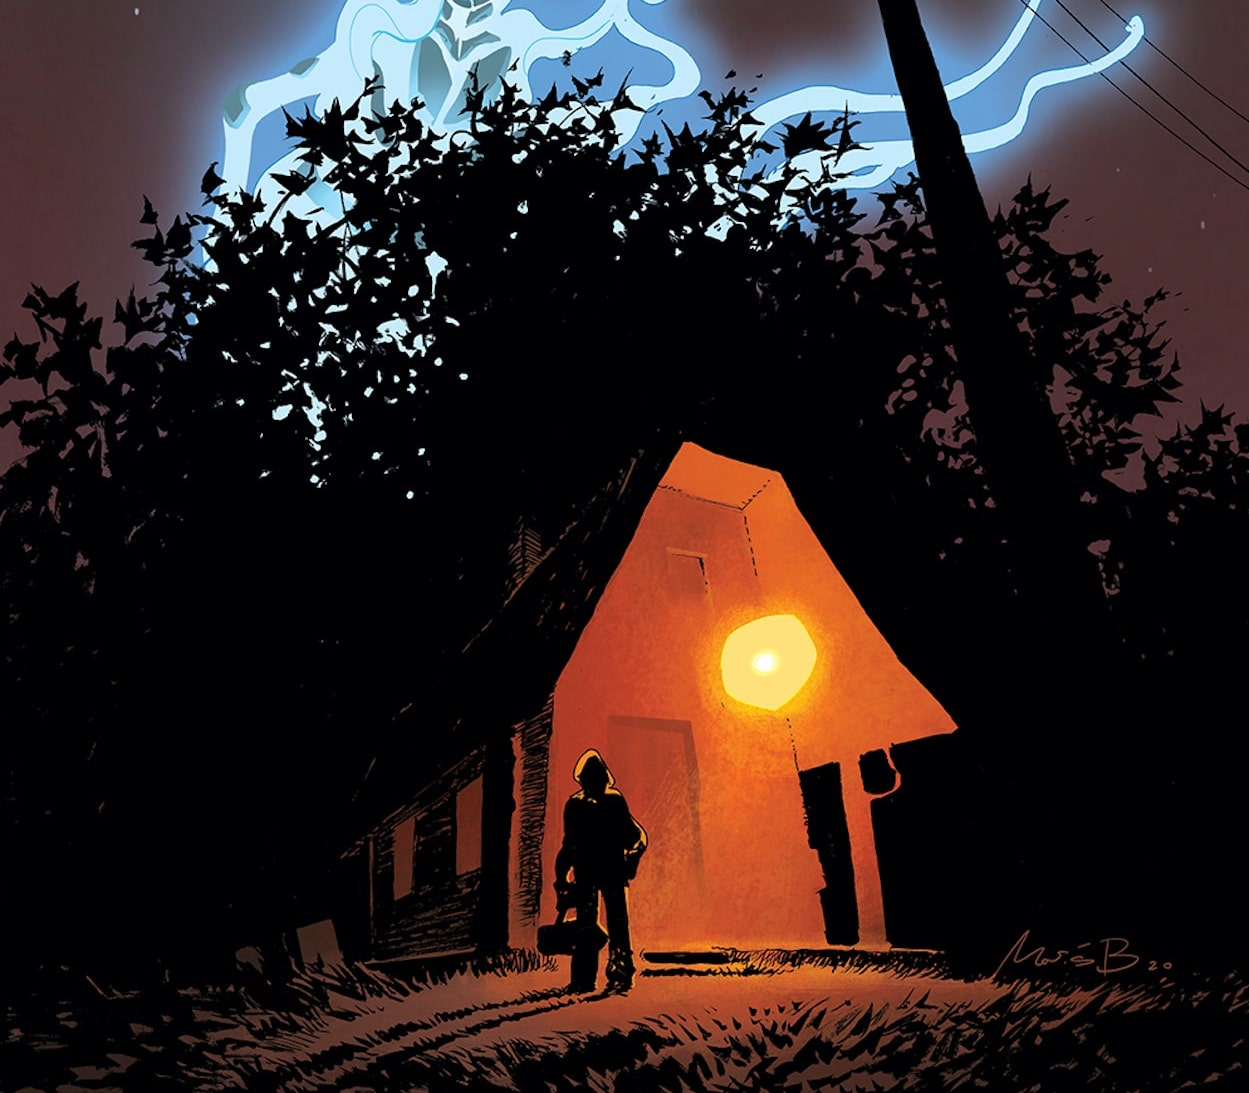 'Alienated' #5 review: Filled with supernatural disquiet and tension